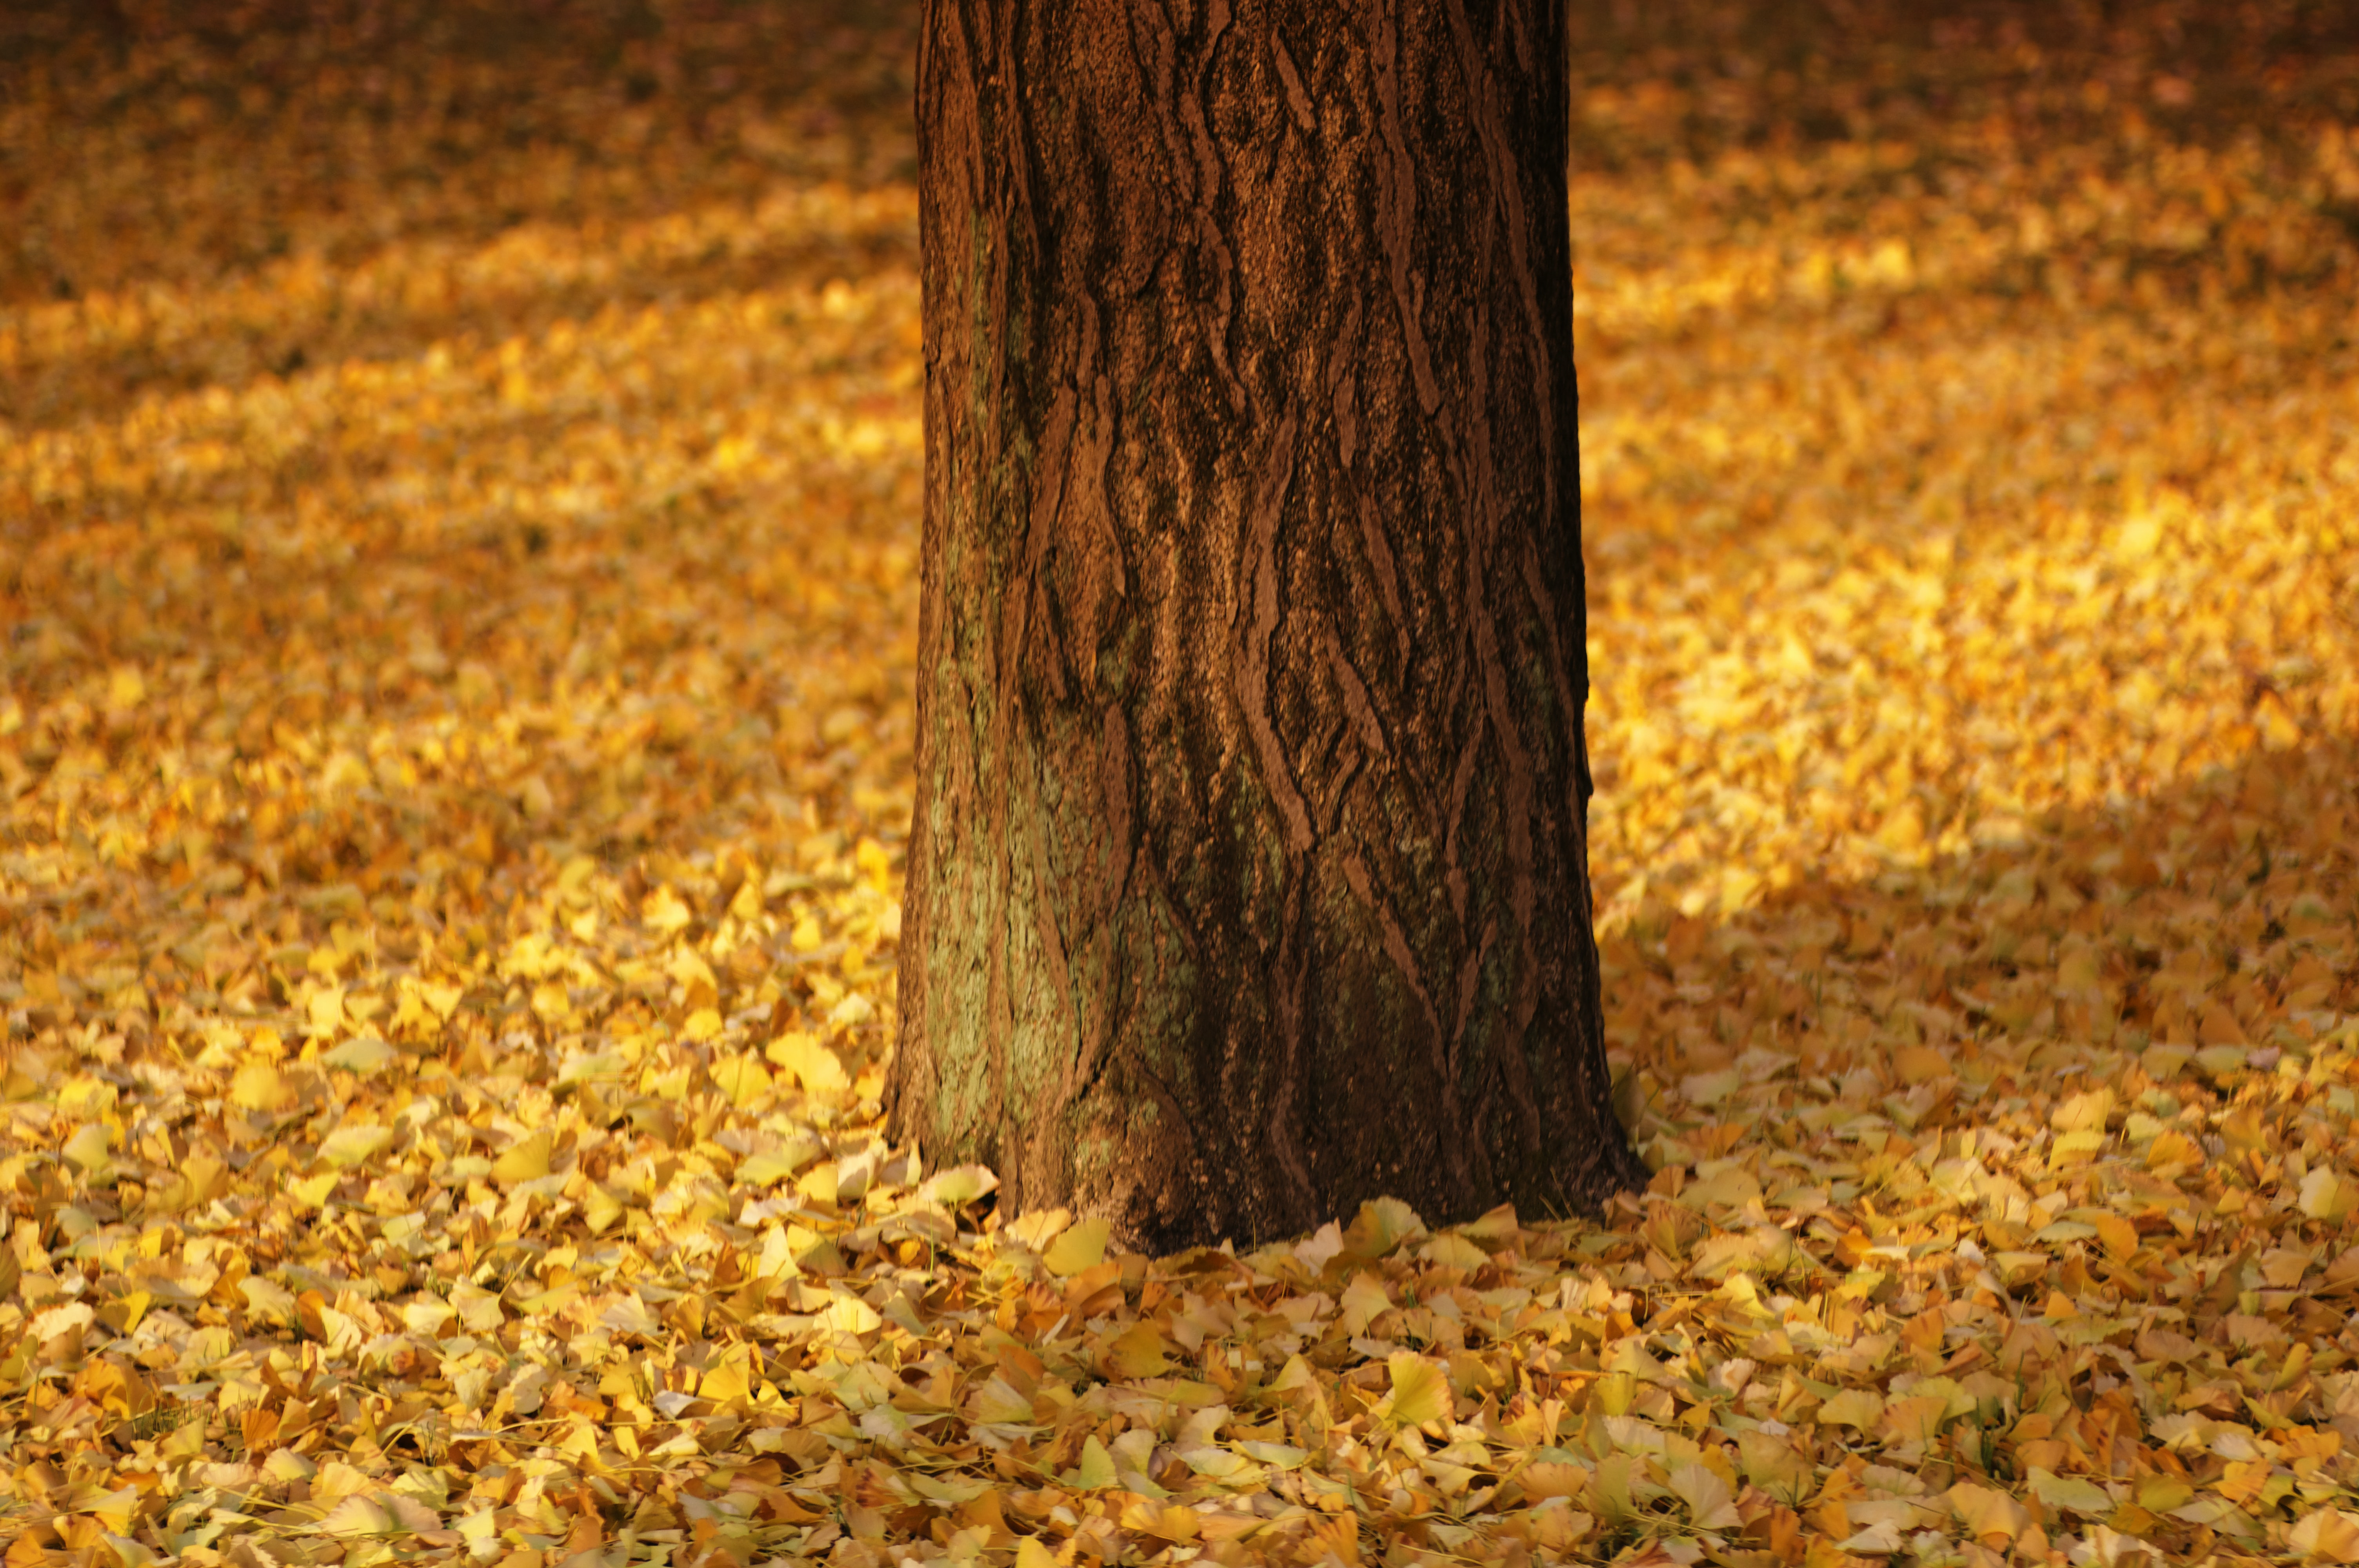 brown tree surrounded by yellow leaves